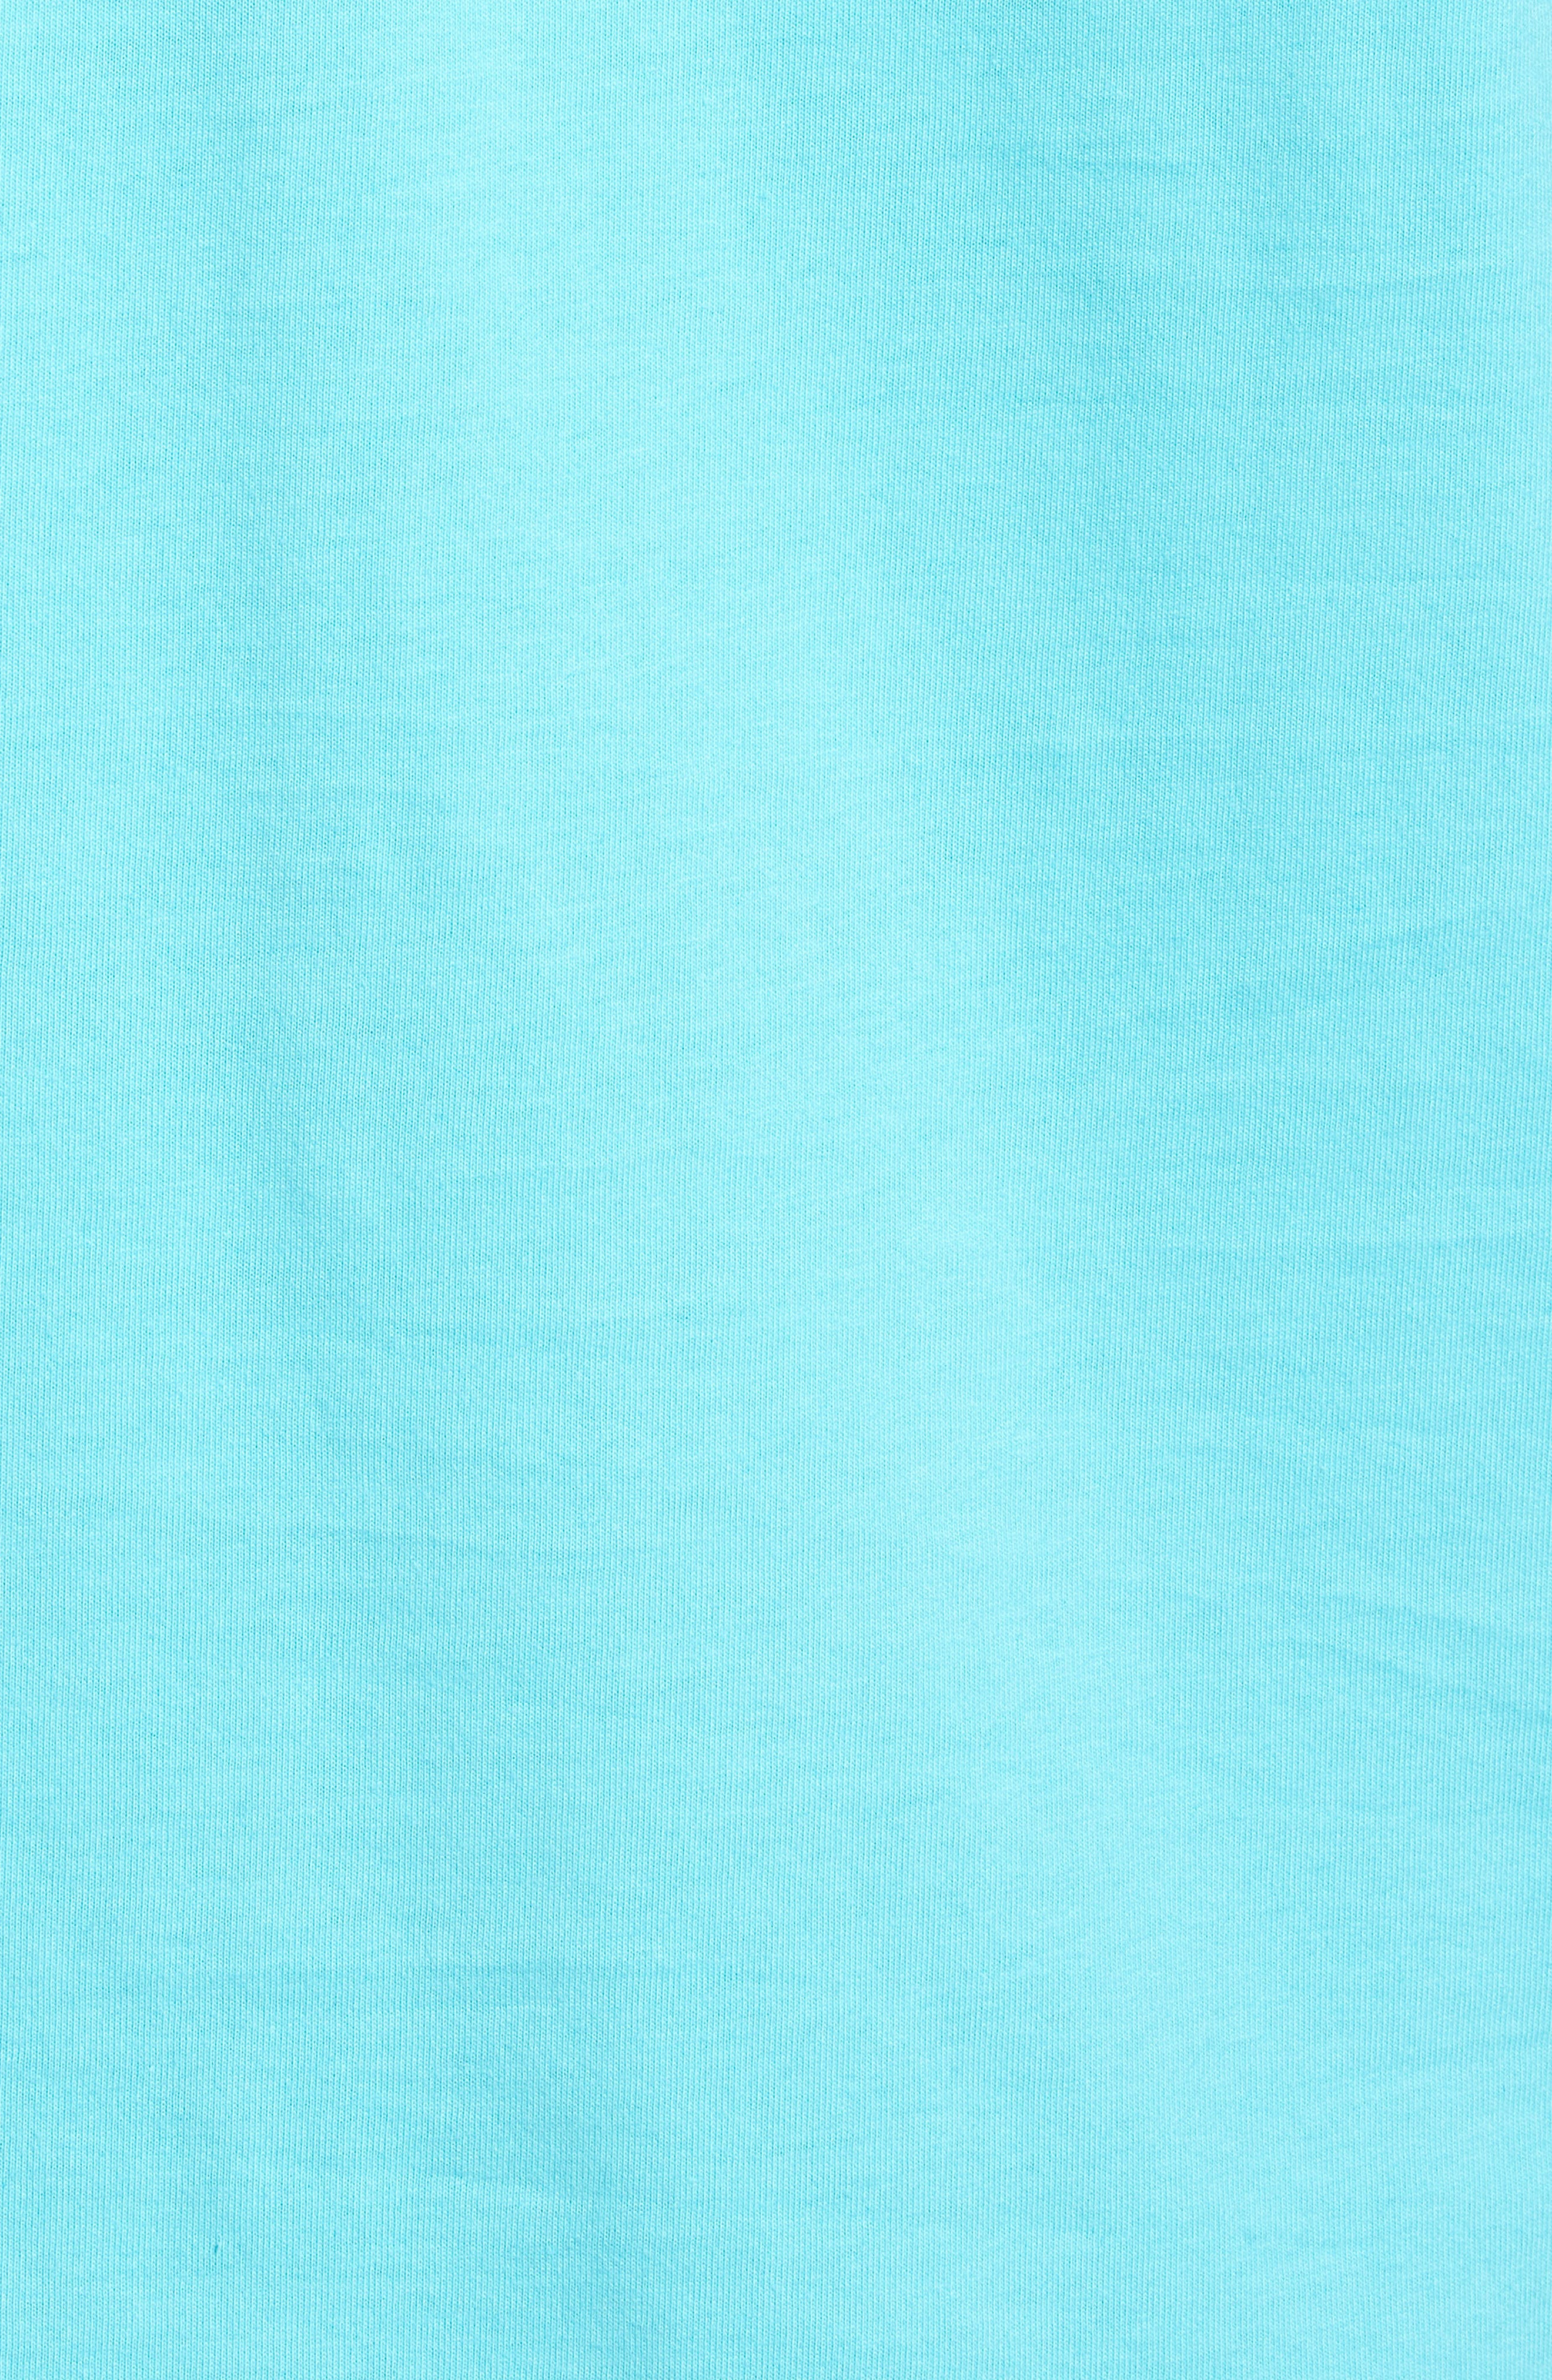 Marlin out of Water Whale Fill Pocket T-Shirt,                             Alternate thumbnail 5, color,                             Turquoise